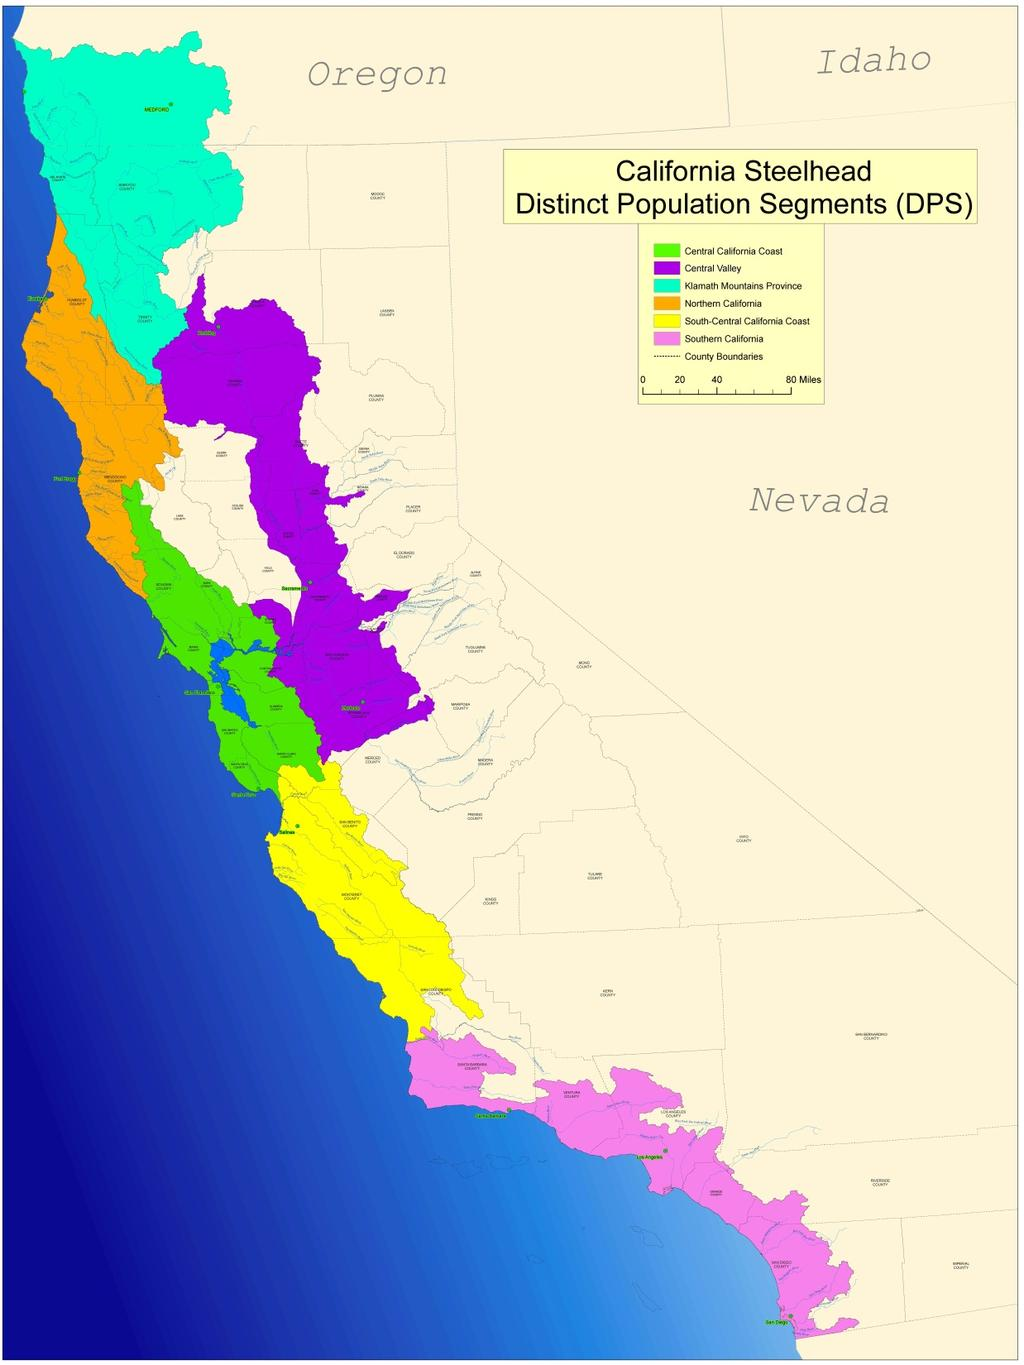 California Steelhead Distinct Population Segments (DPS) Klamath Mountains Province Klamath Mountains Province Status: Not warranted (2001) Northern California Status: Threatened (2000) Central